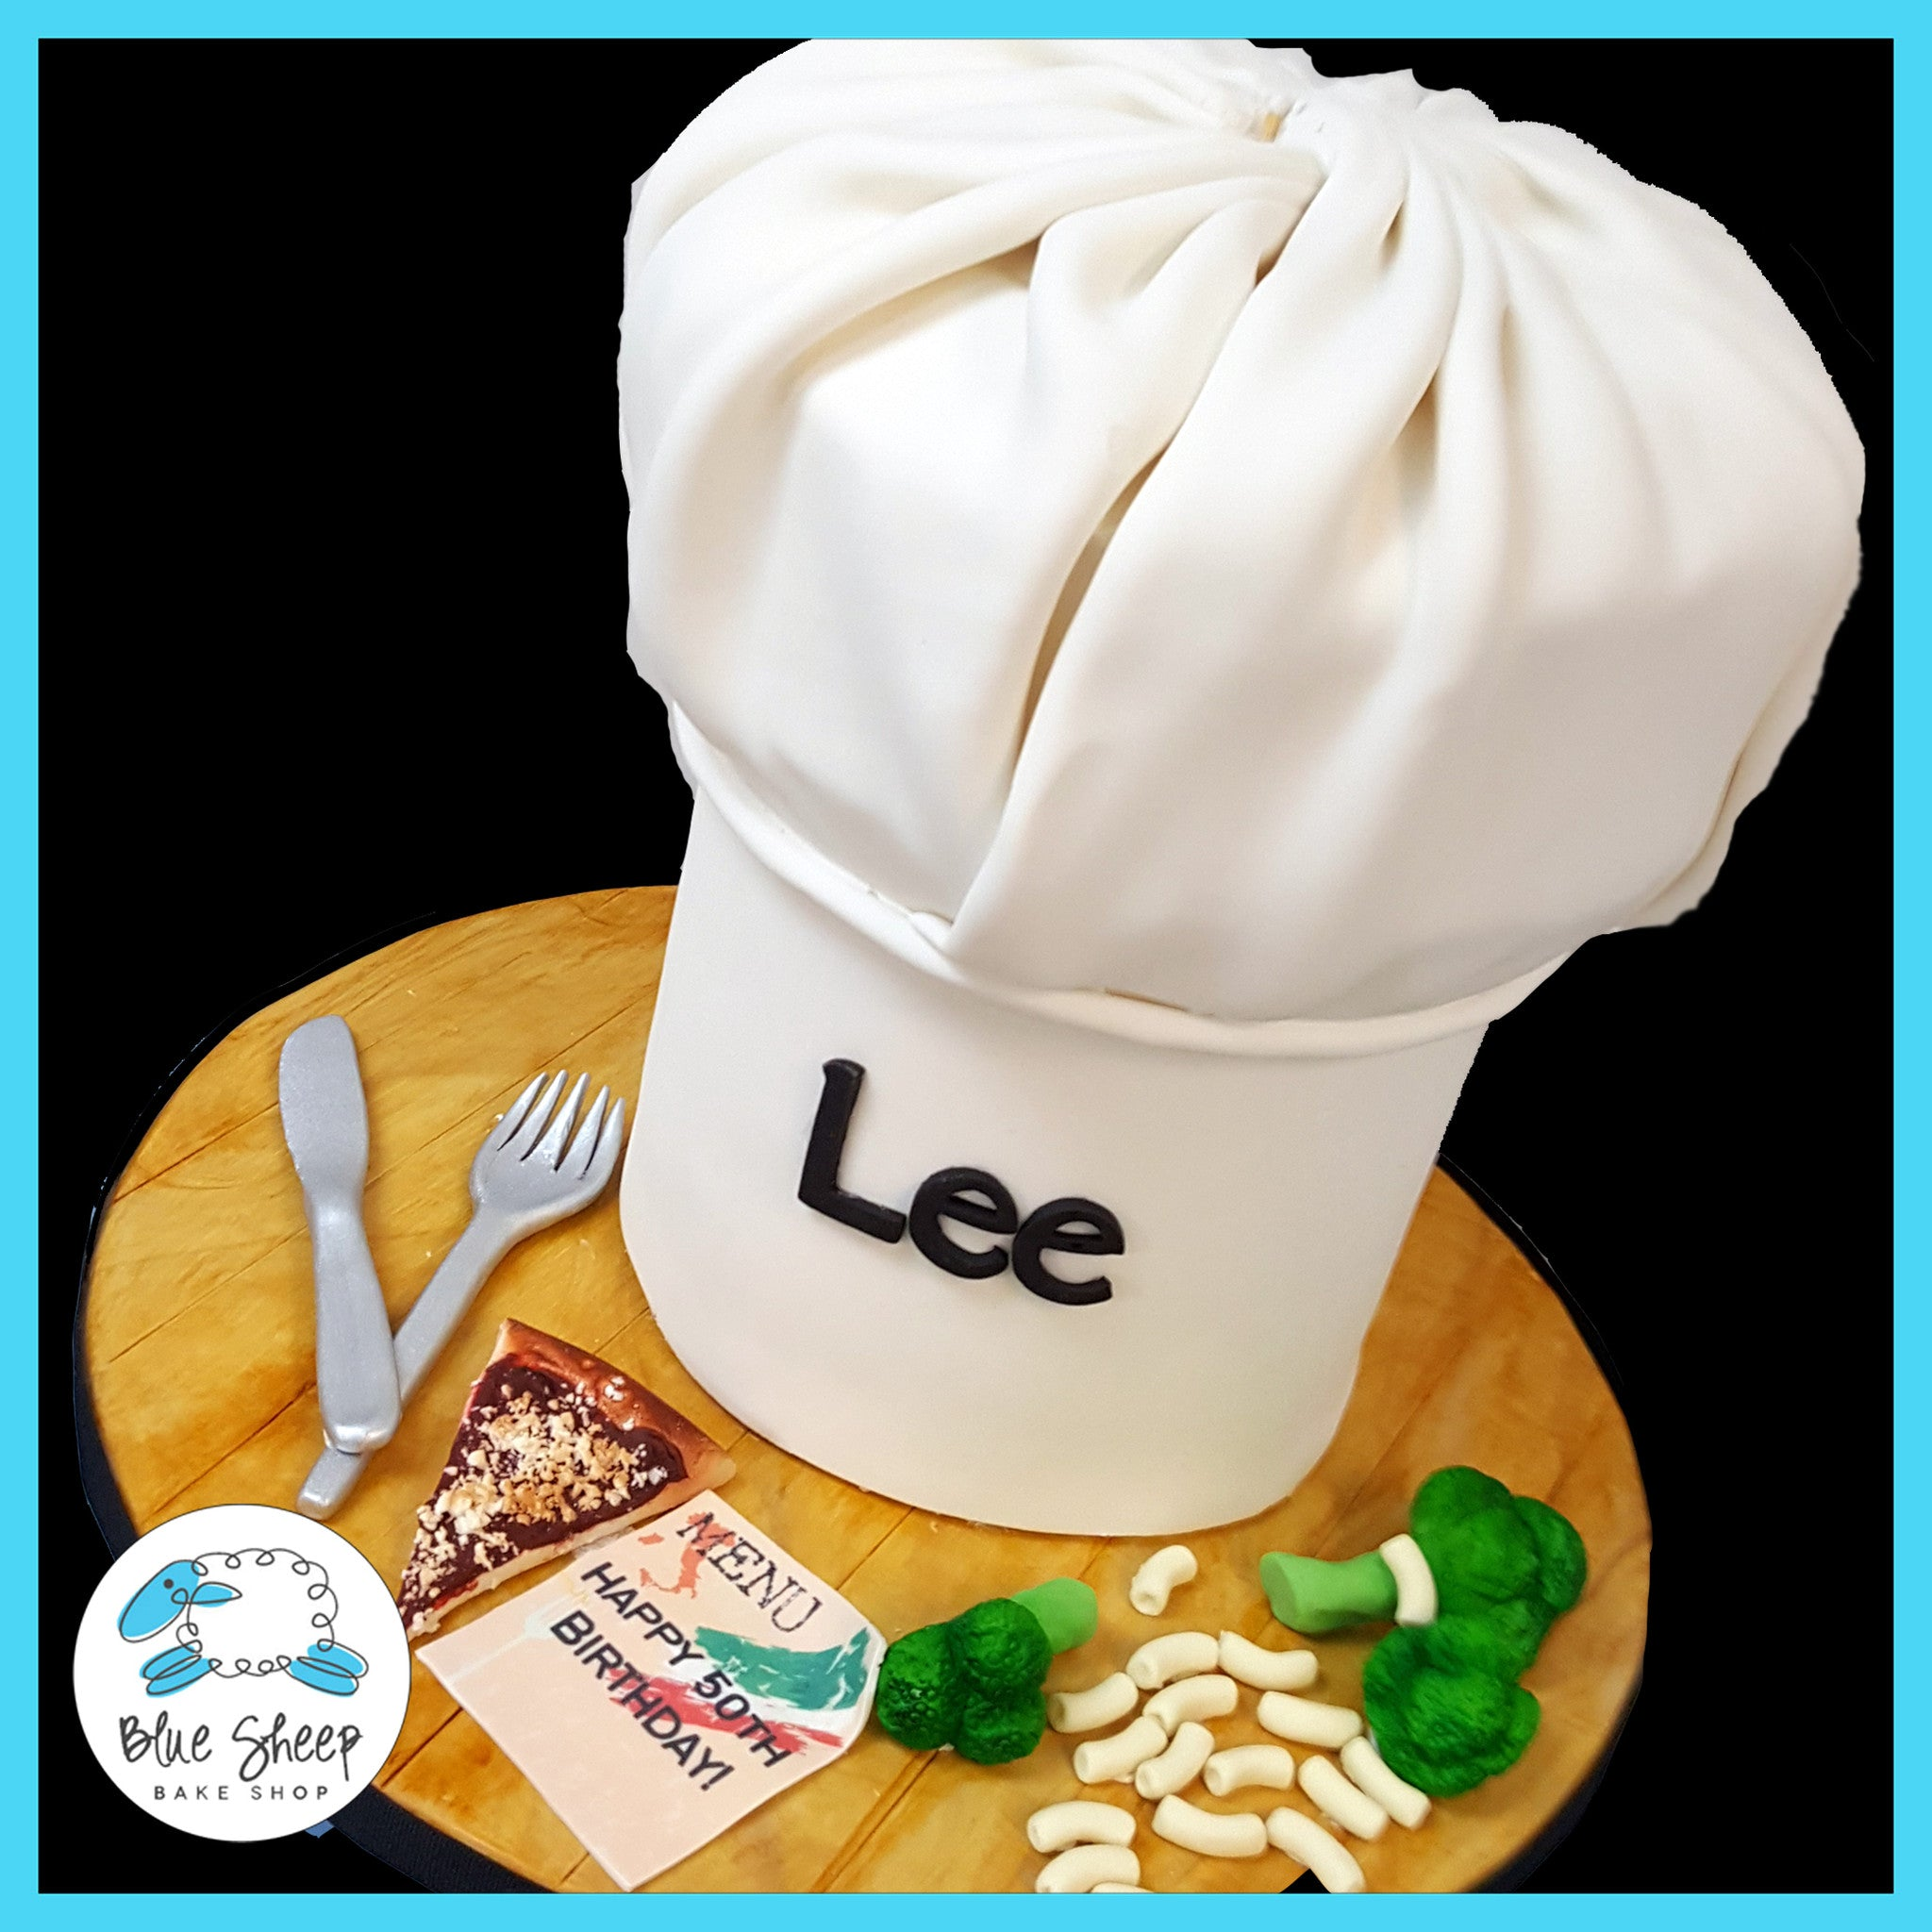 Chefs Hat Birthday Cake Nj Blue Sheep Bake Shop